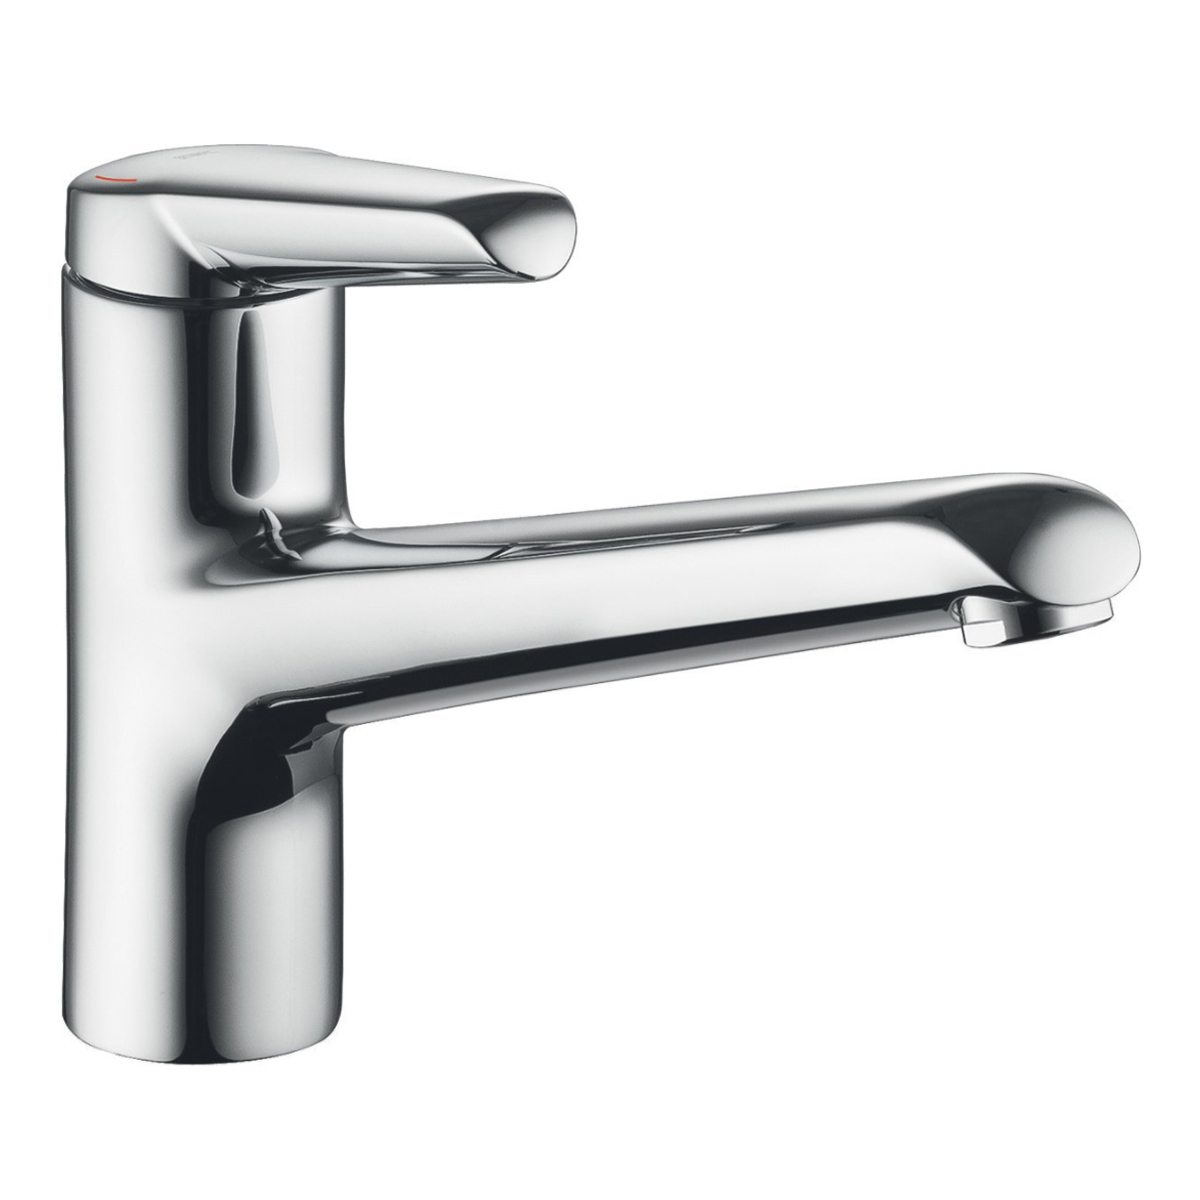 KWC 10321023000 Adrena Kitchen Mixer Tap